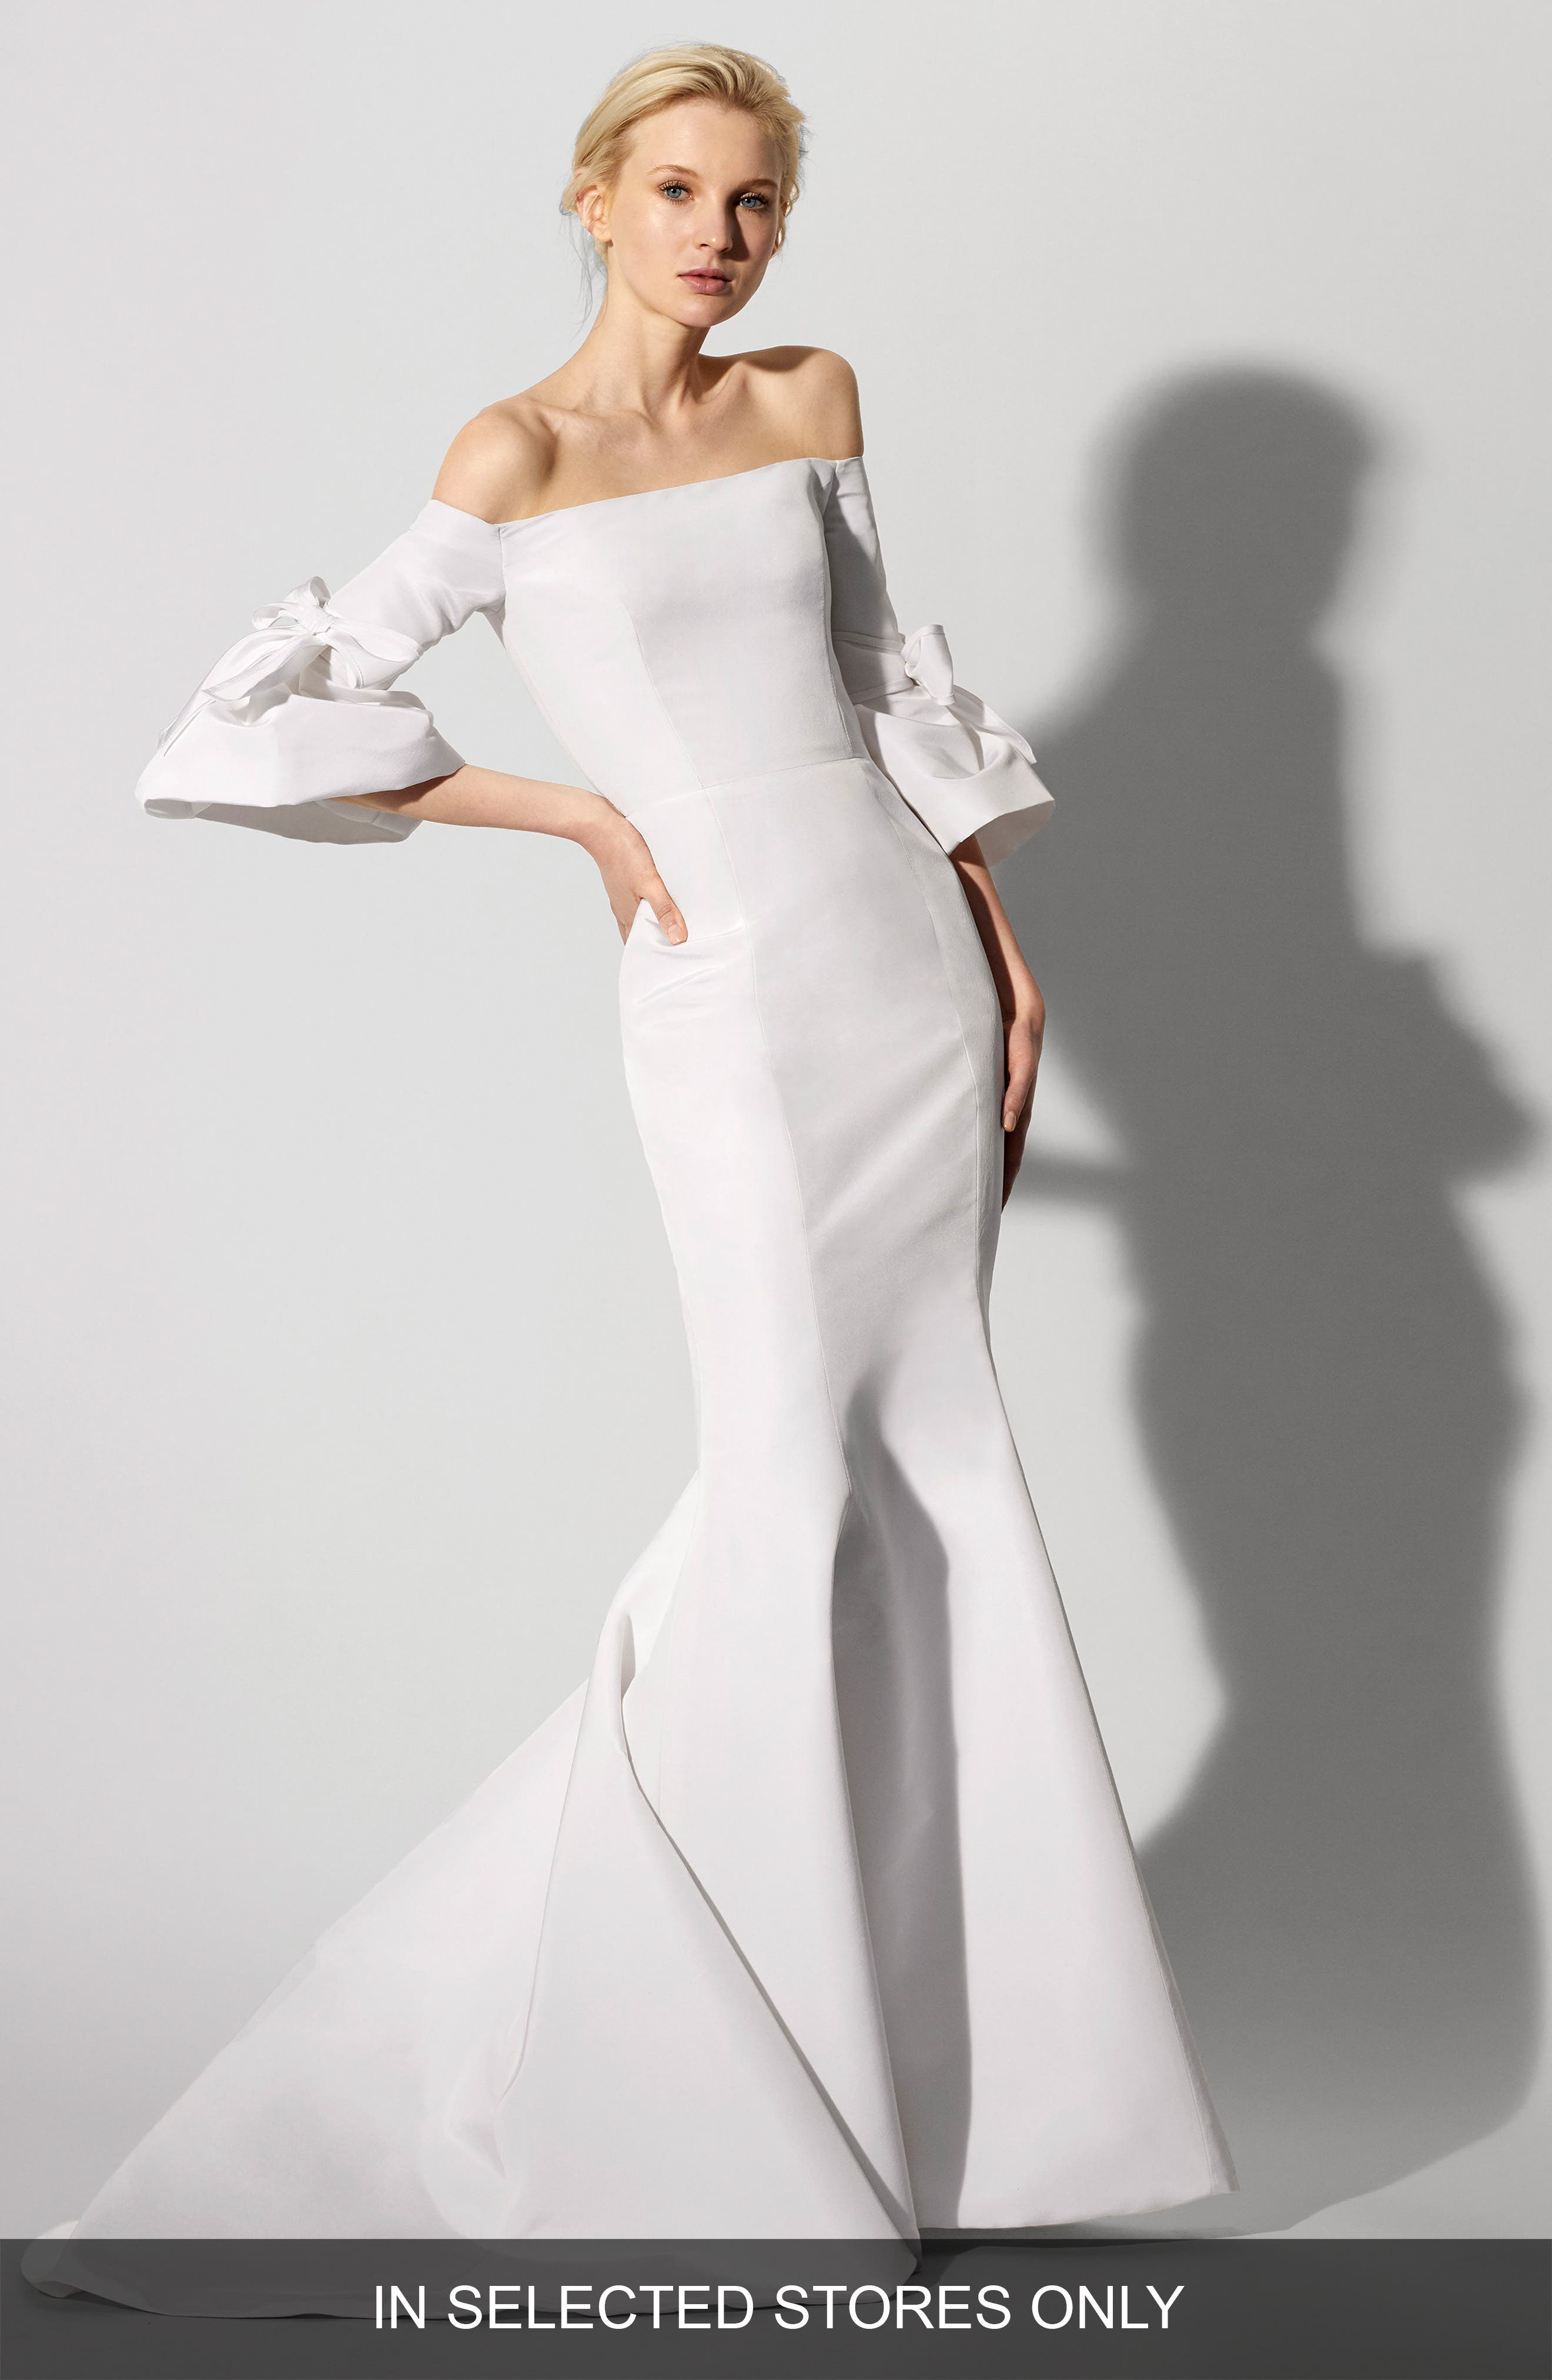 Alternate Image 1 Selected - Carolina Herrera Faye Off the Shoulder Silk Faille Mermaid Gown